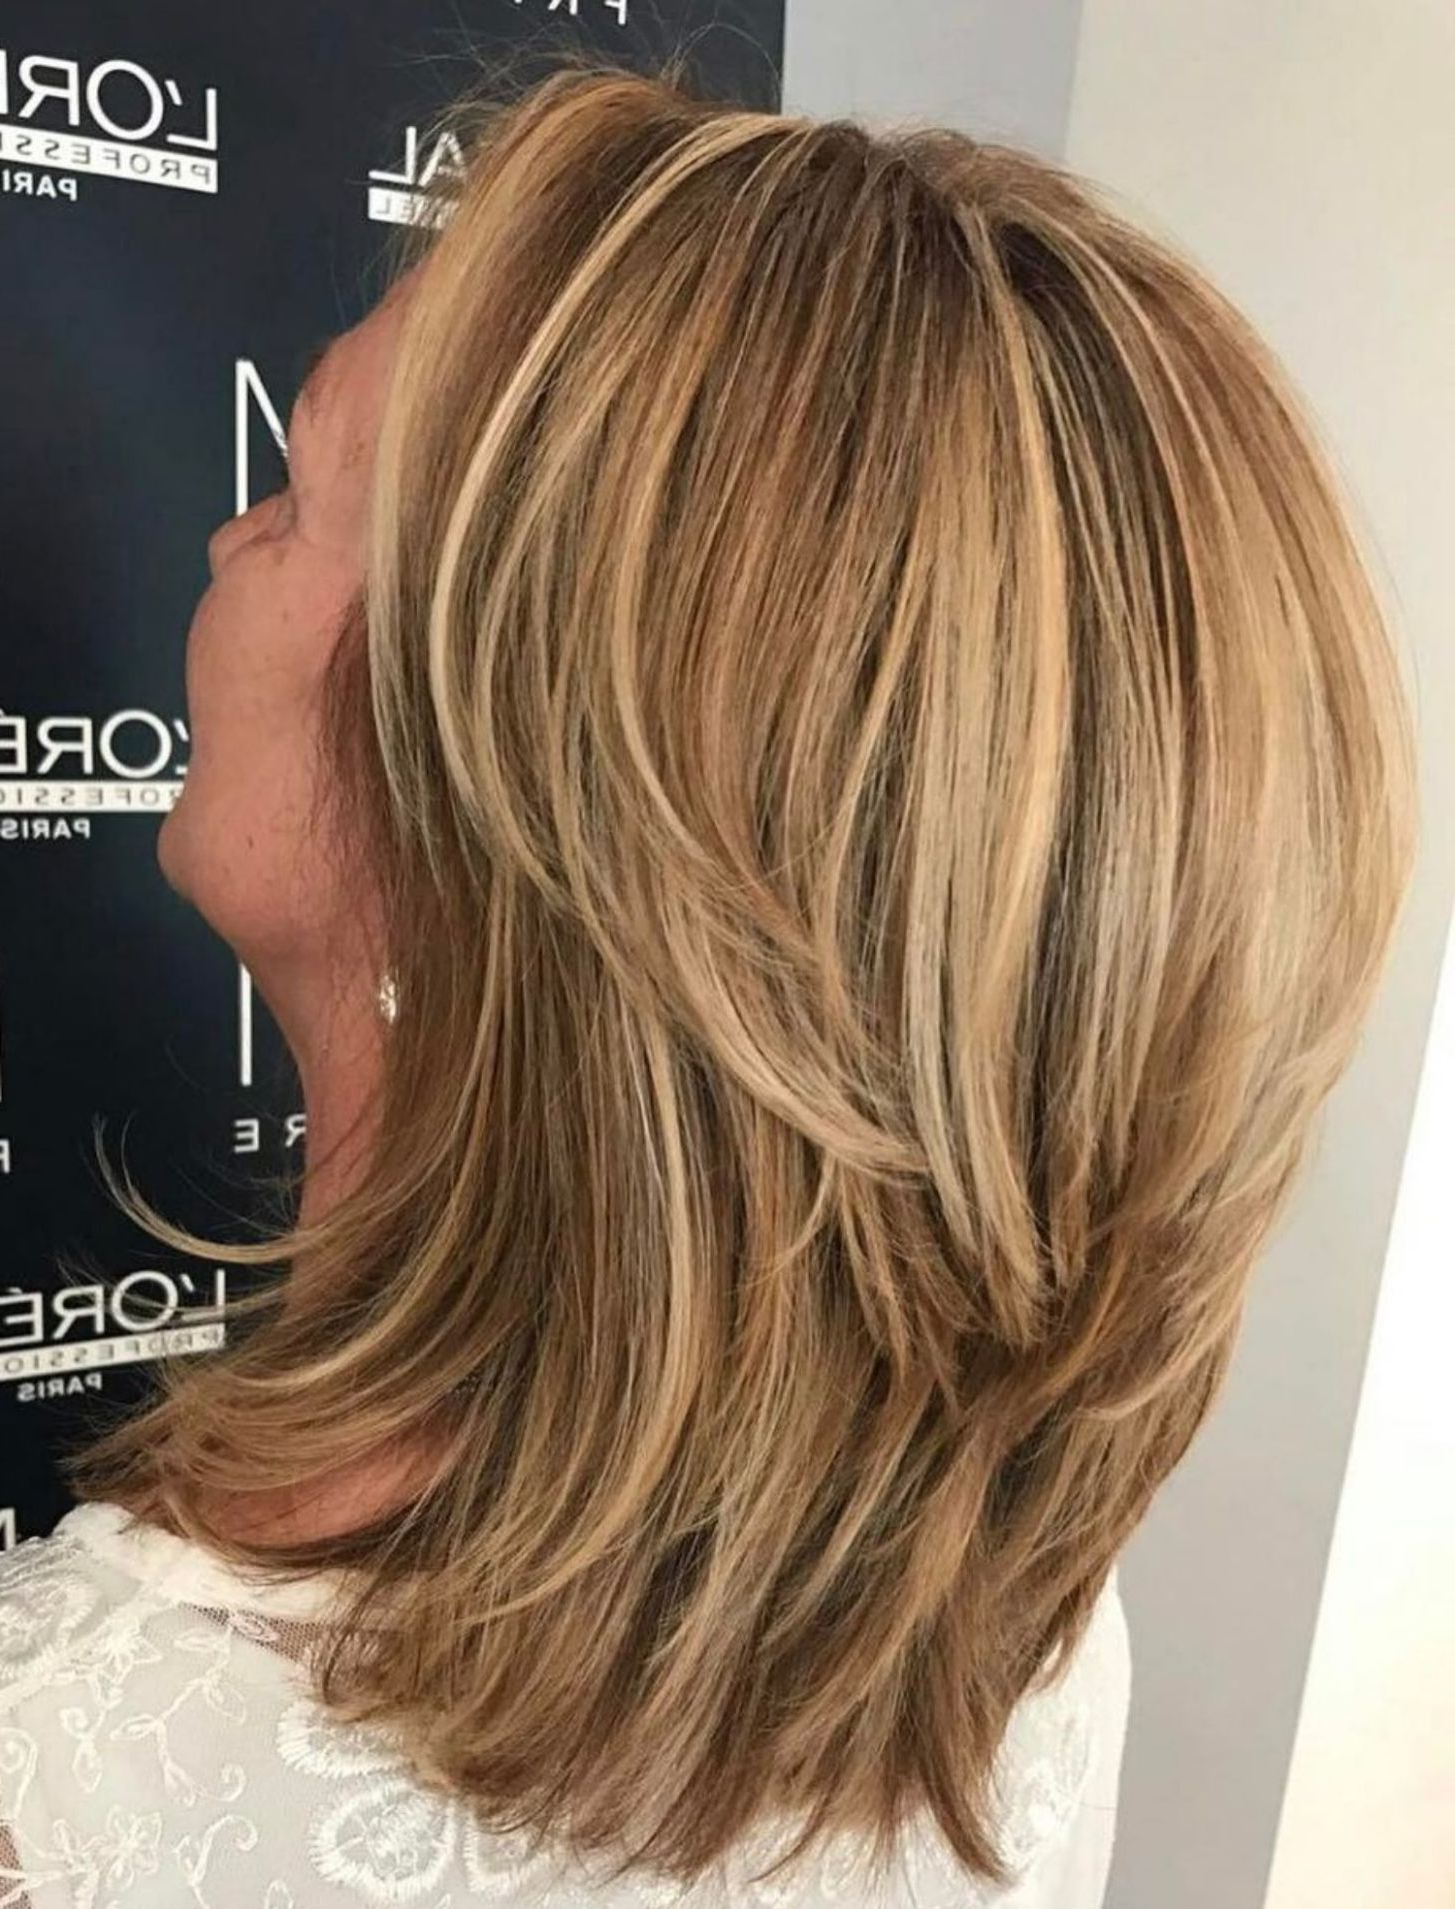 Trendy Mid Length Sliced Bronde Haircuts Pertaining To 50 Modern Haircuts For Women Over 50 With Extra Zing In (View 13 of 20)